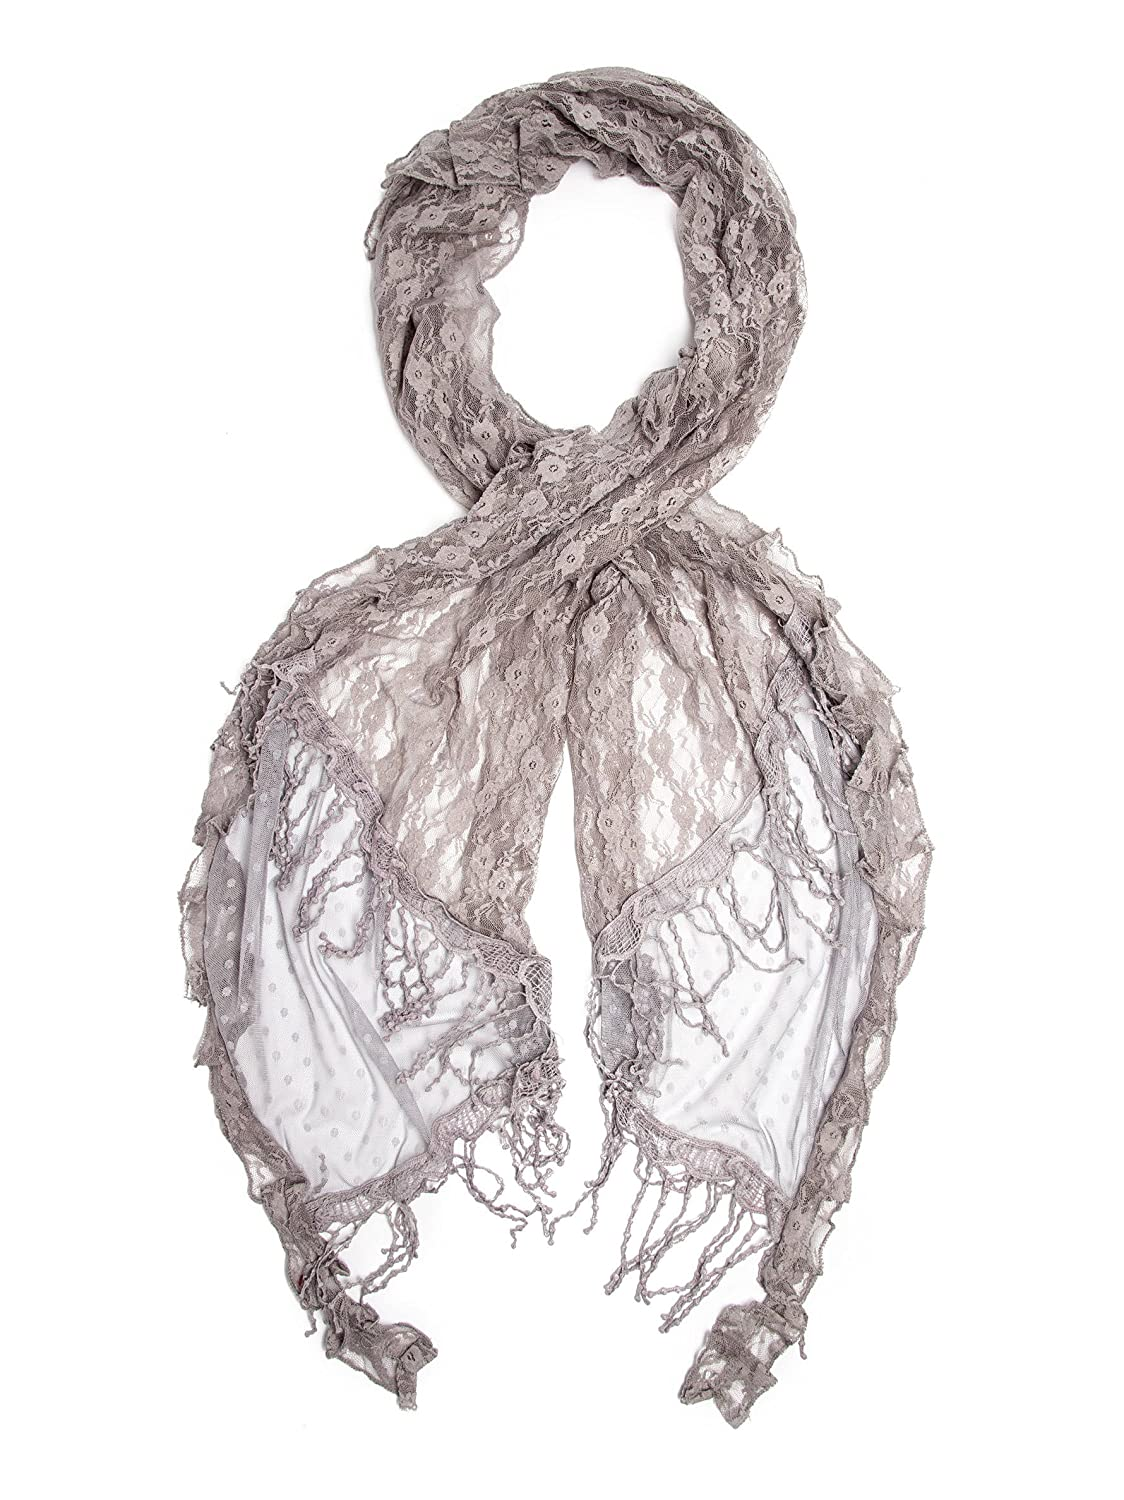 Victorian Wraps, Capes, Shawl, Capelets Vintage Inspired Lace Crochet Trim Scarf $22.95 AT vintagedancer.com